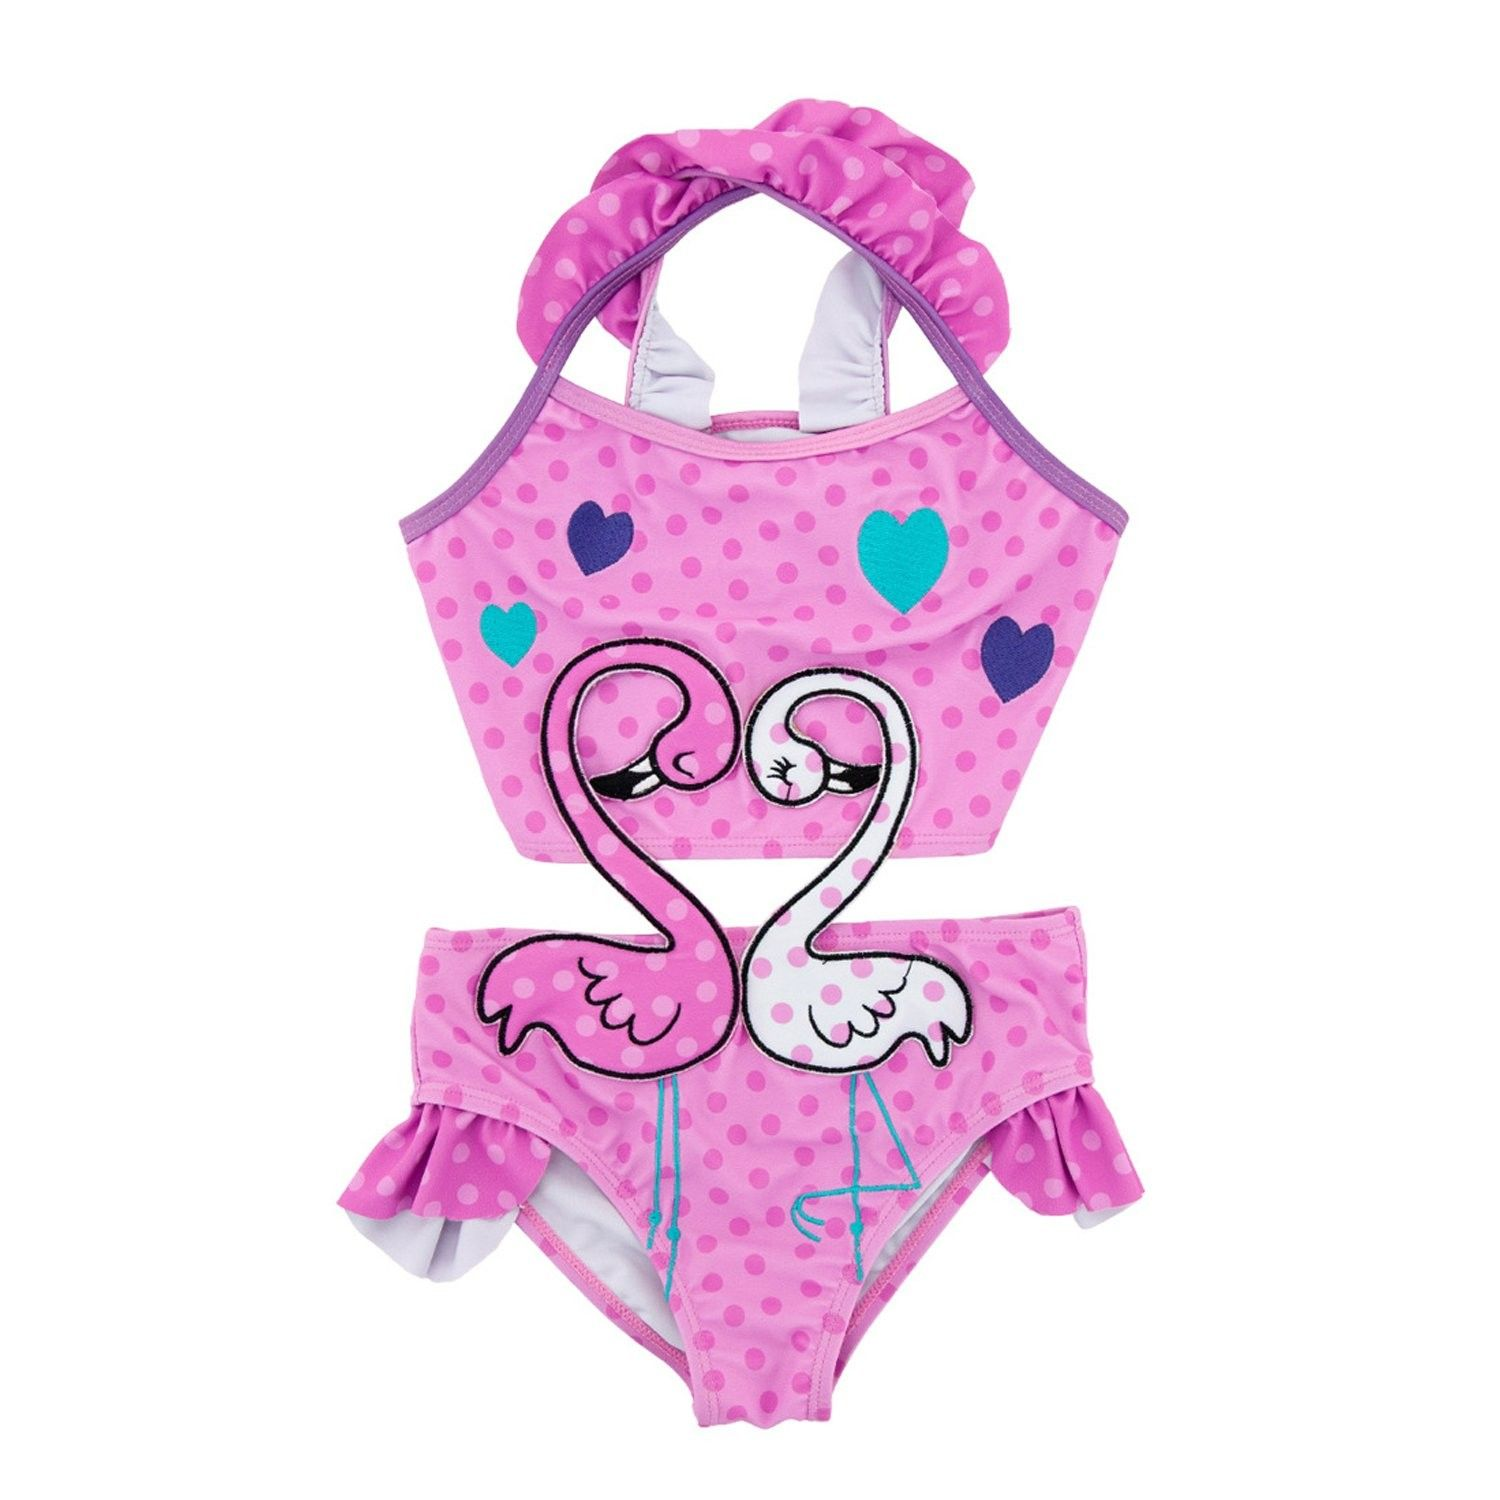 96dad85807c3a Girls Swan One-Piece Swimsuit Retro Floral Bathing suit w/Cross-Back(Toddler /Little Kid) - Pink - C9180IW0MSY - Girls' Clothing, Swim, One-Pieces  #OnePieces ...